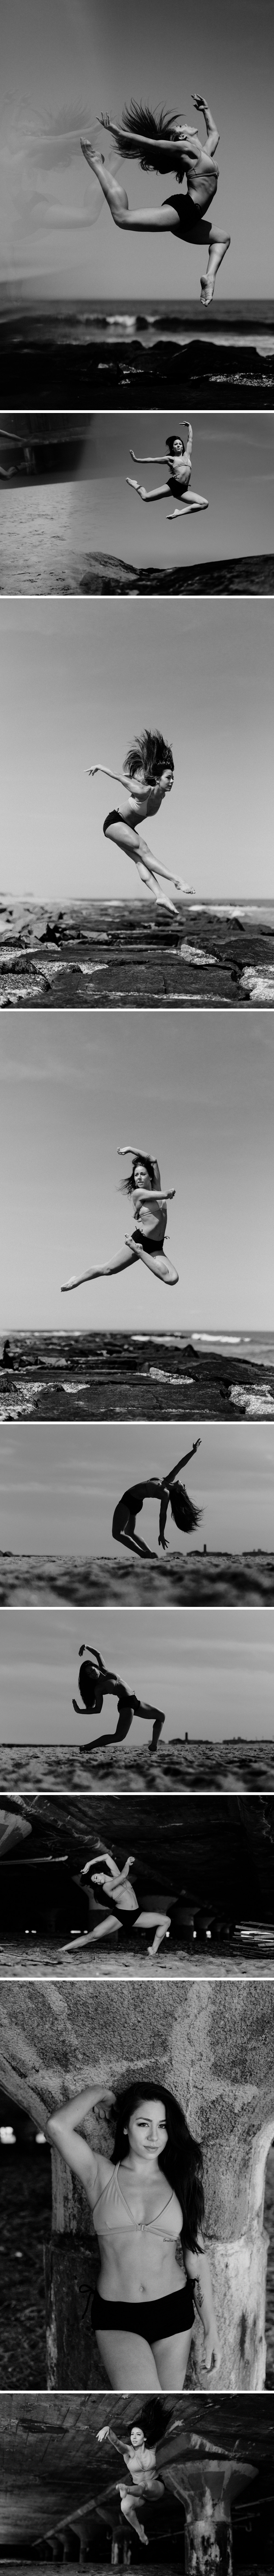 Dancer Andrea Hoch in Asbury Park, New Jersey